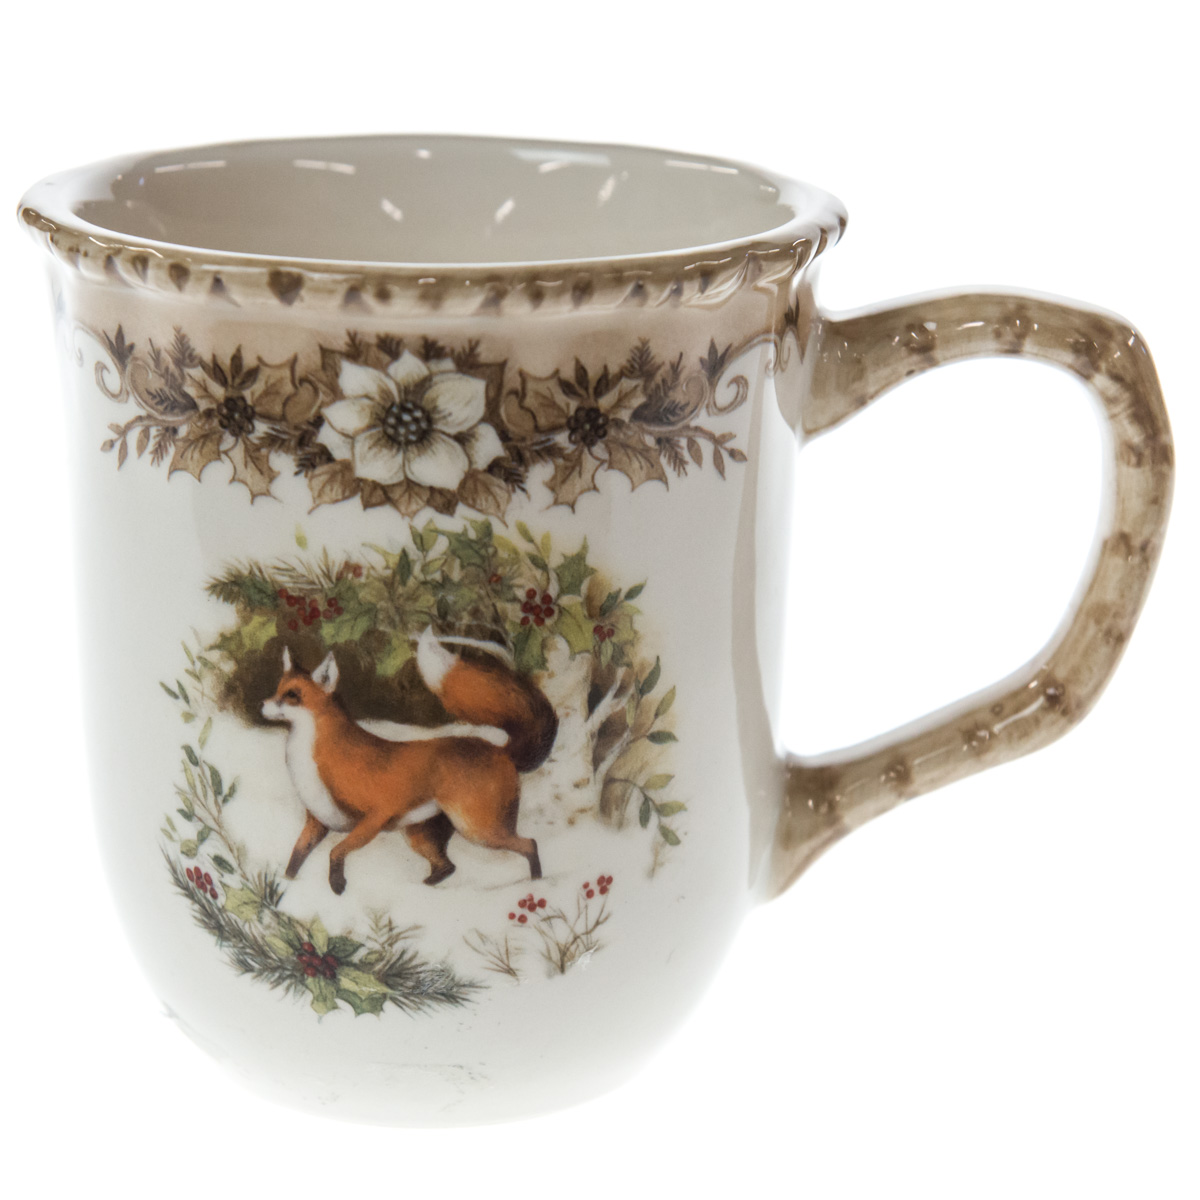 Woodland Stoneware Mug - Fox  sc 1 st  Shop Cracker Barrel & Woodland Christmas Dinnerware - Cracker Barrel Old Country Store